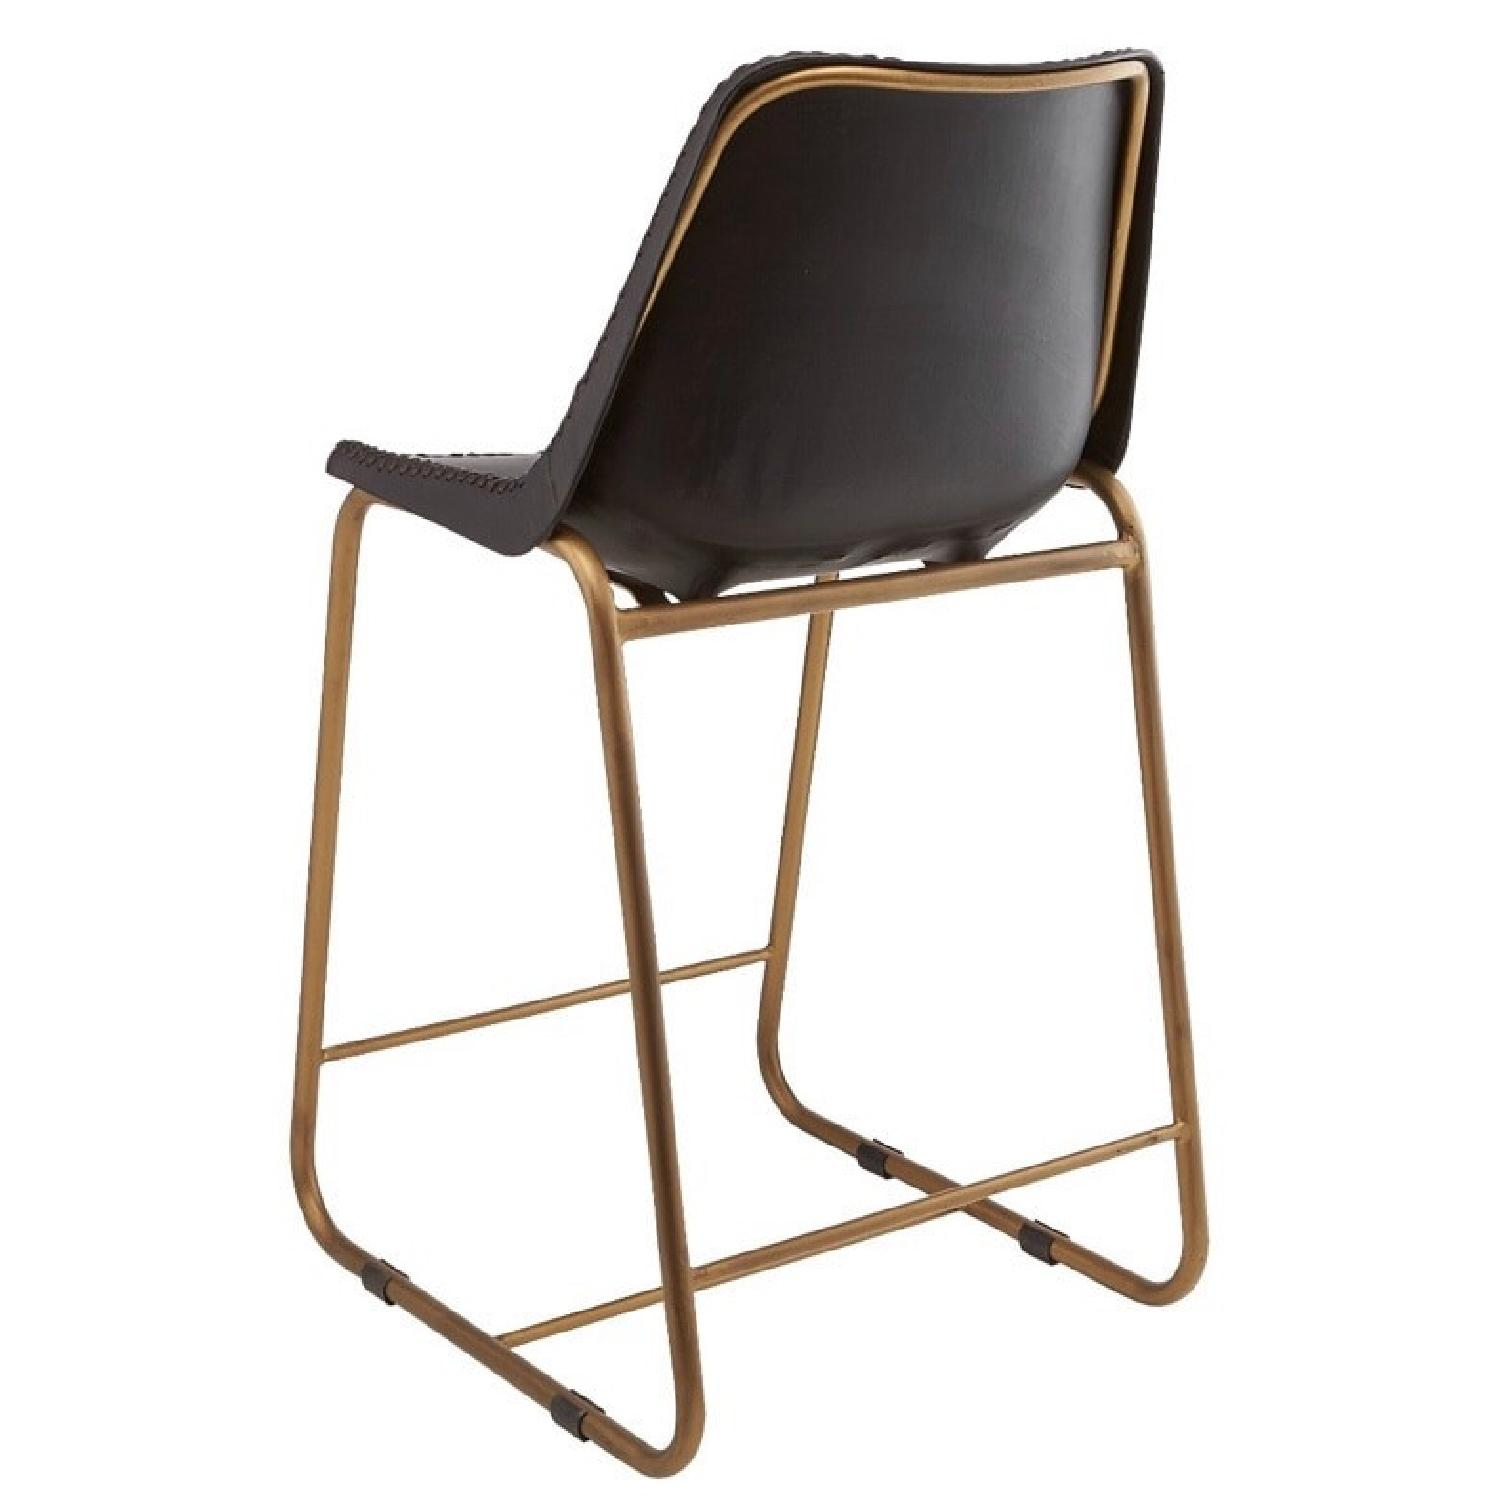 CB2 Roadhouse Black Leather Counter Stools - image-1